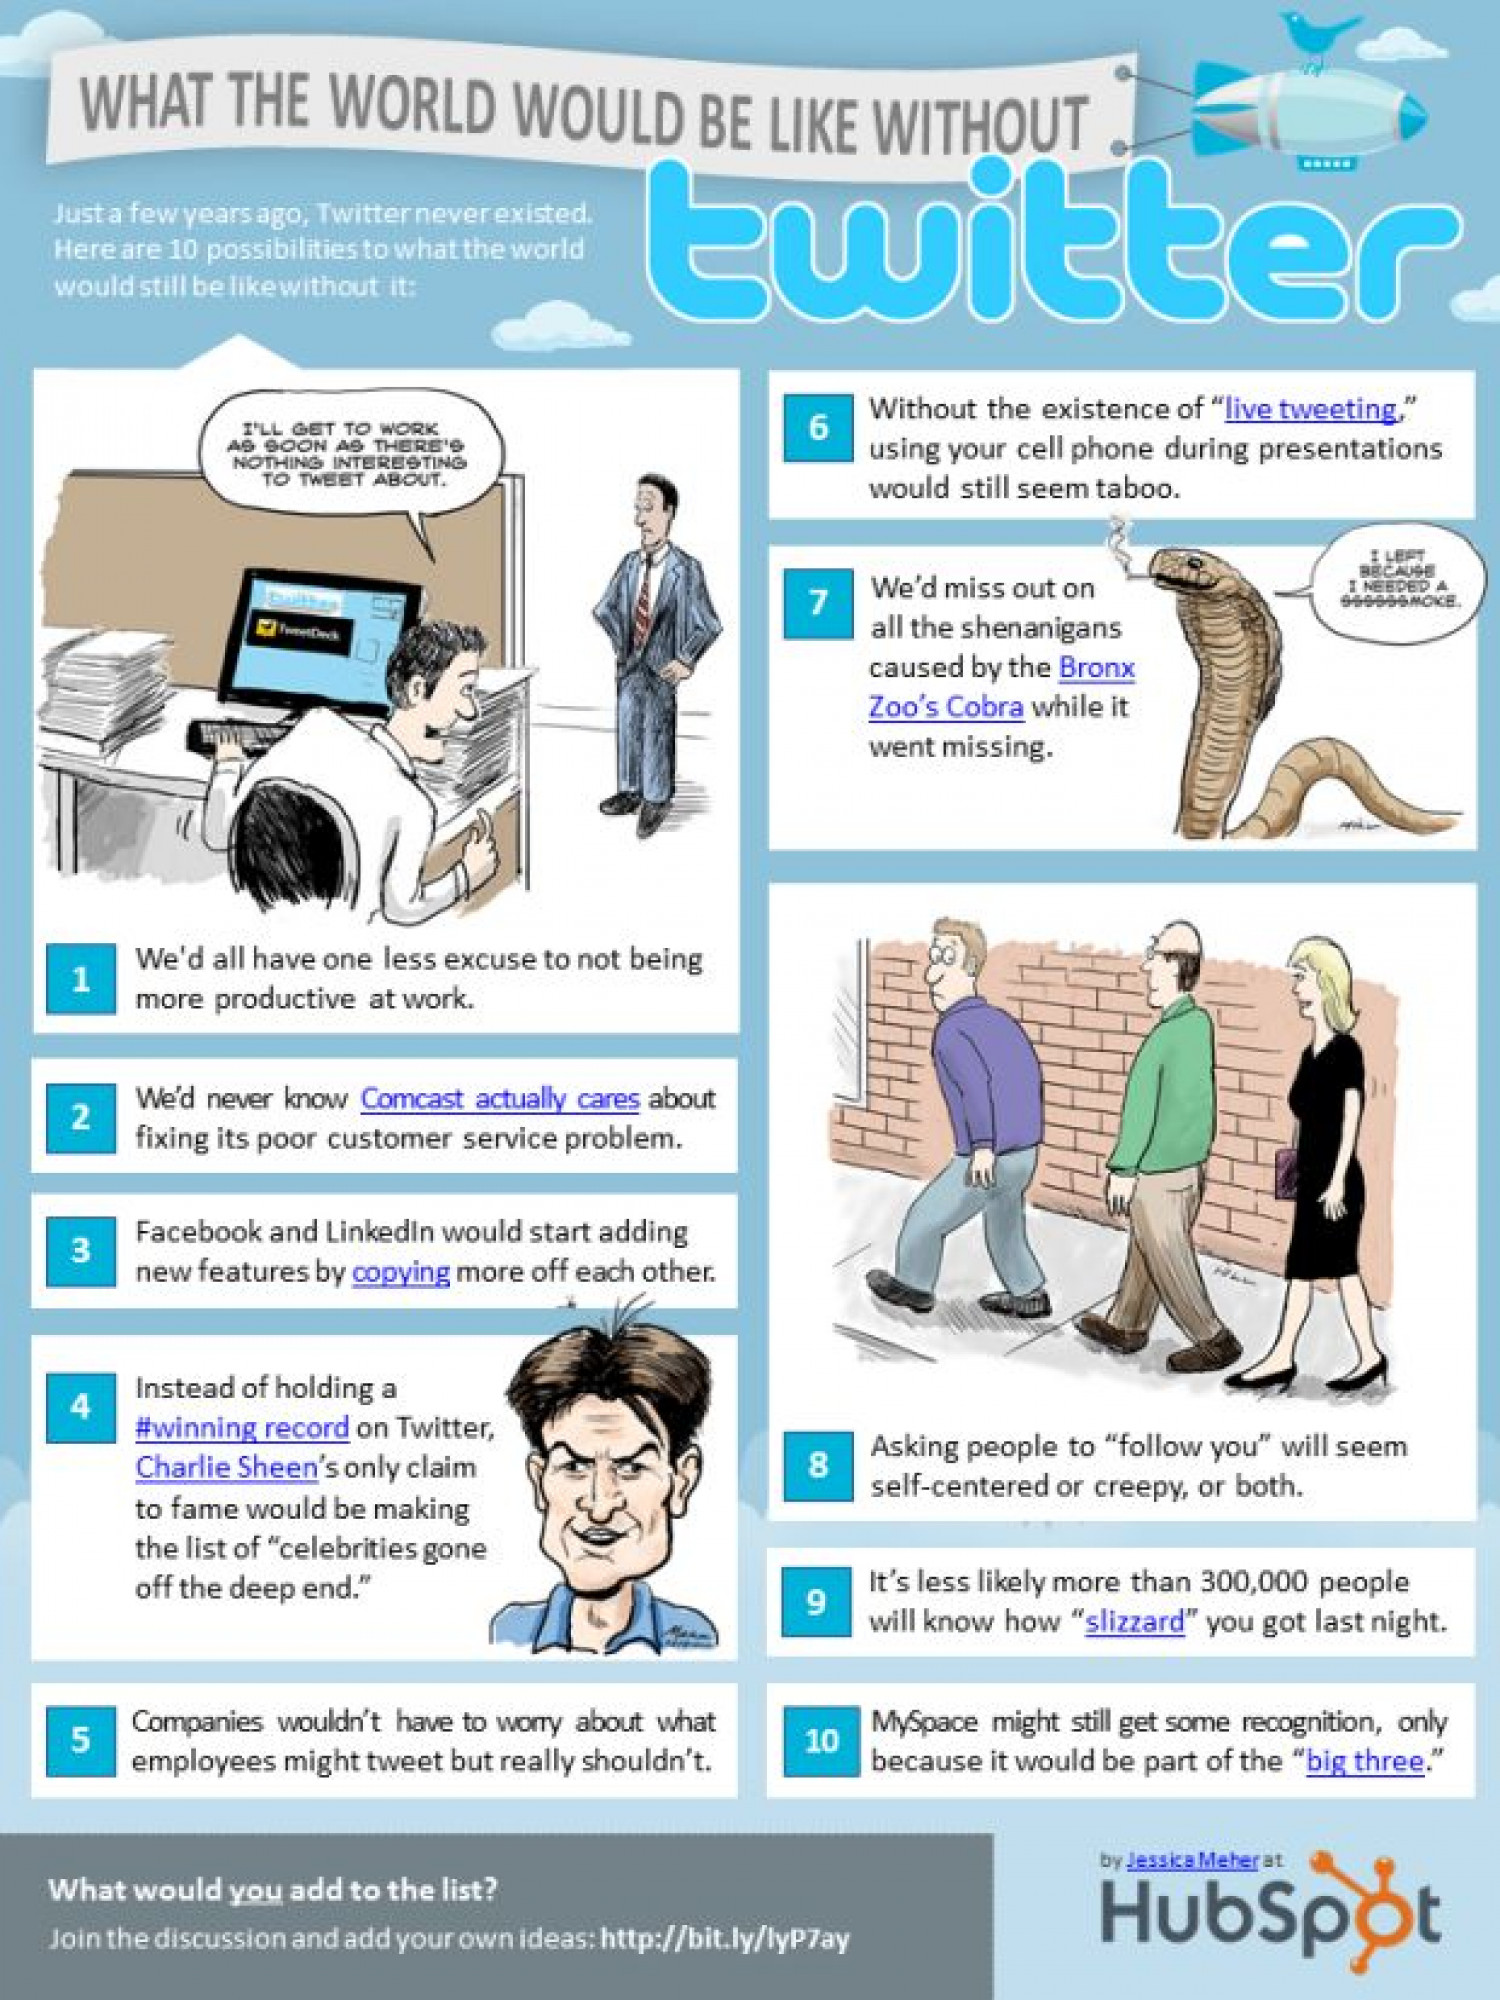 What Would the World be Like Without Twitter? Infographic